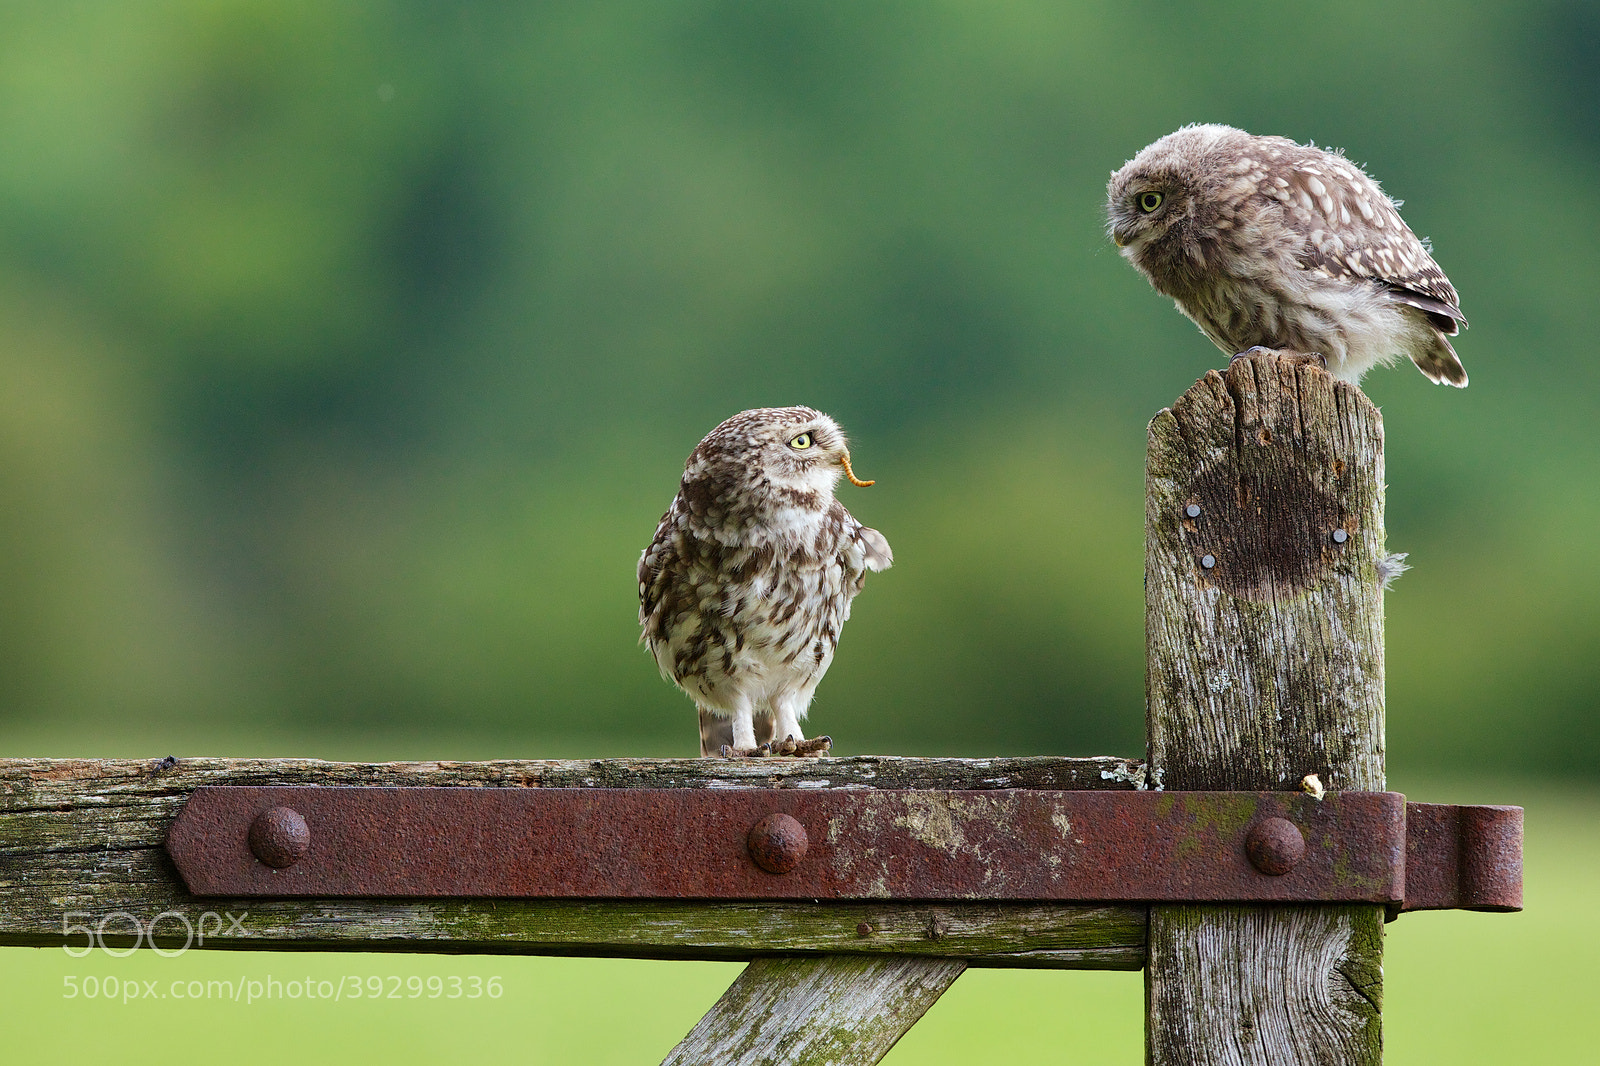 Photograph suppertime by Mark Bridger on 500px